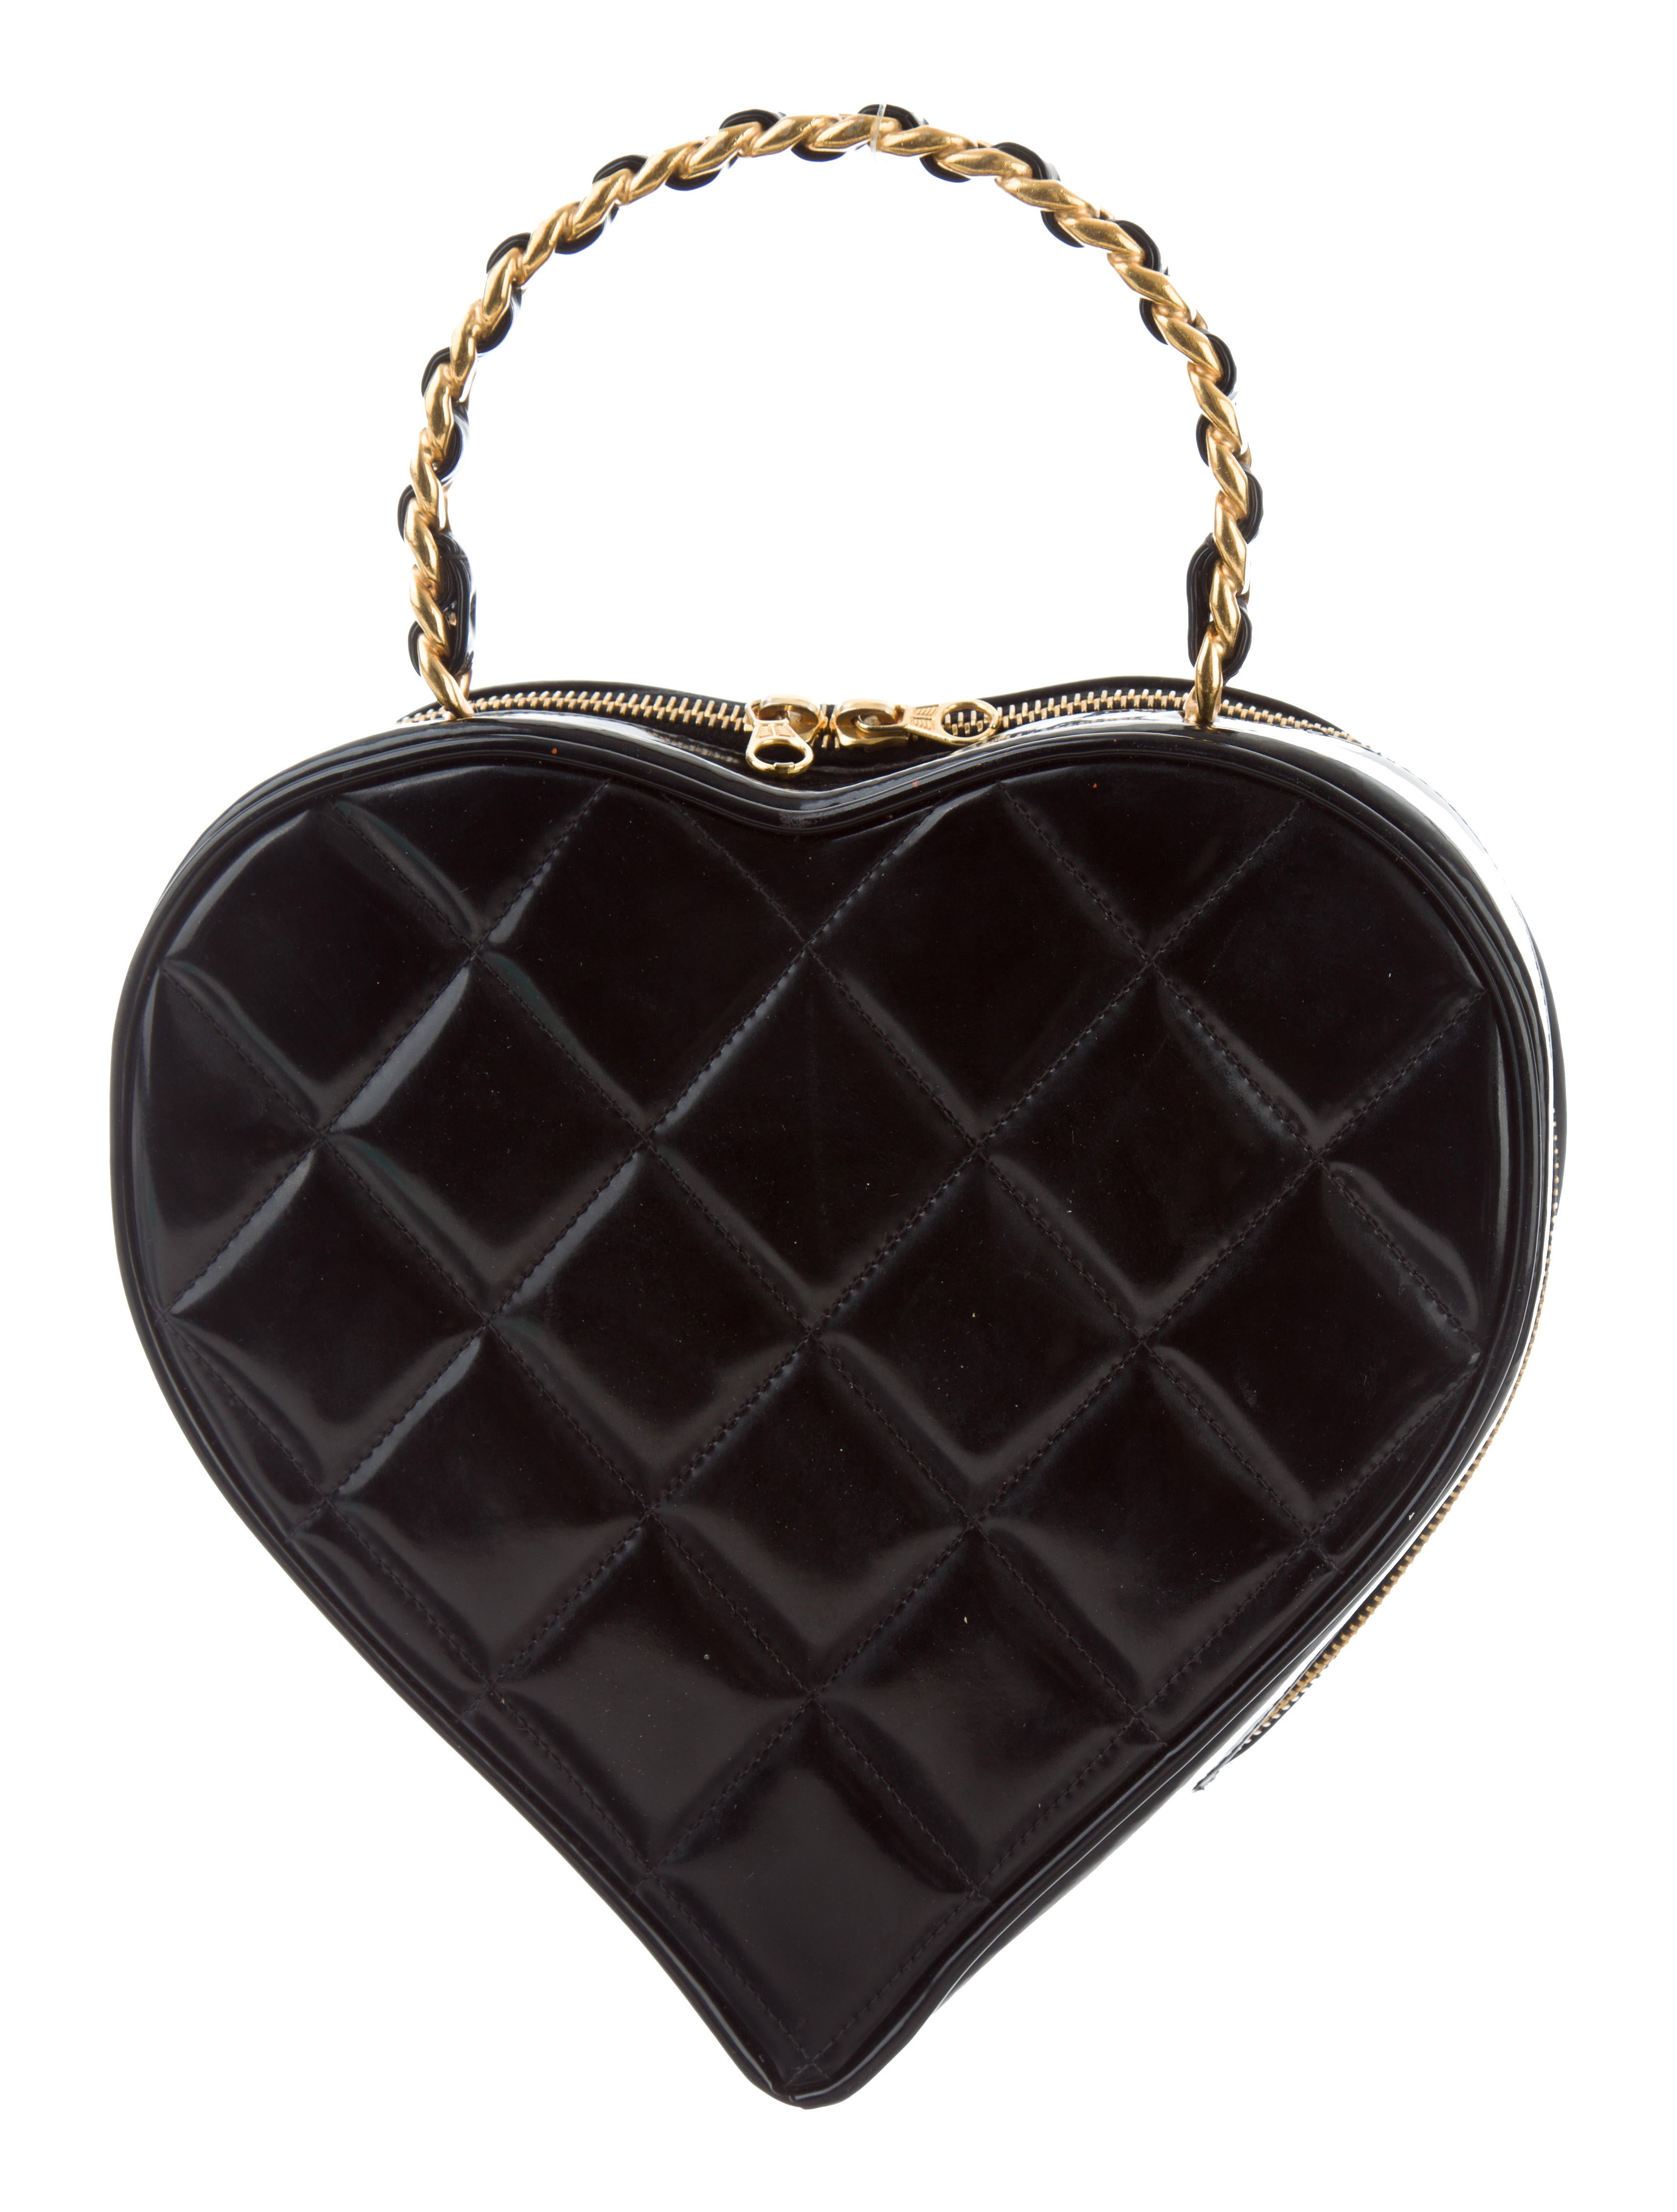 7339380640d0 Chanel Quilted Purse Price   Stanford Center for Opportunity Policy ...